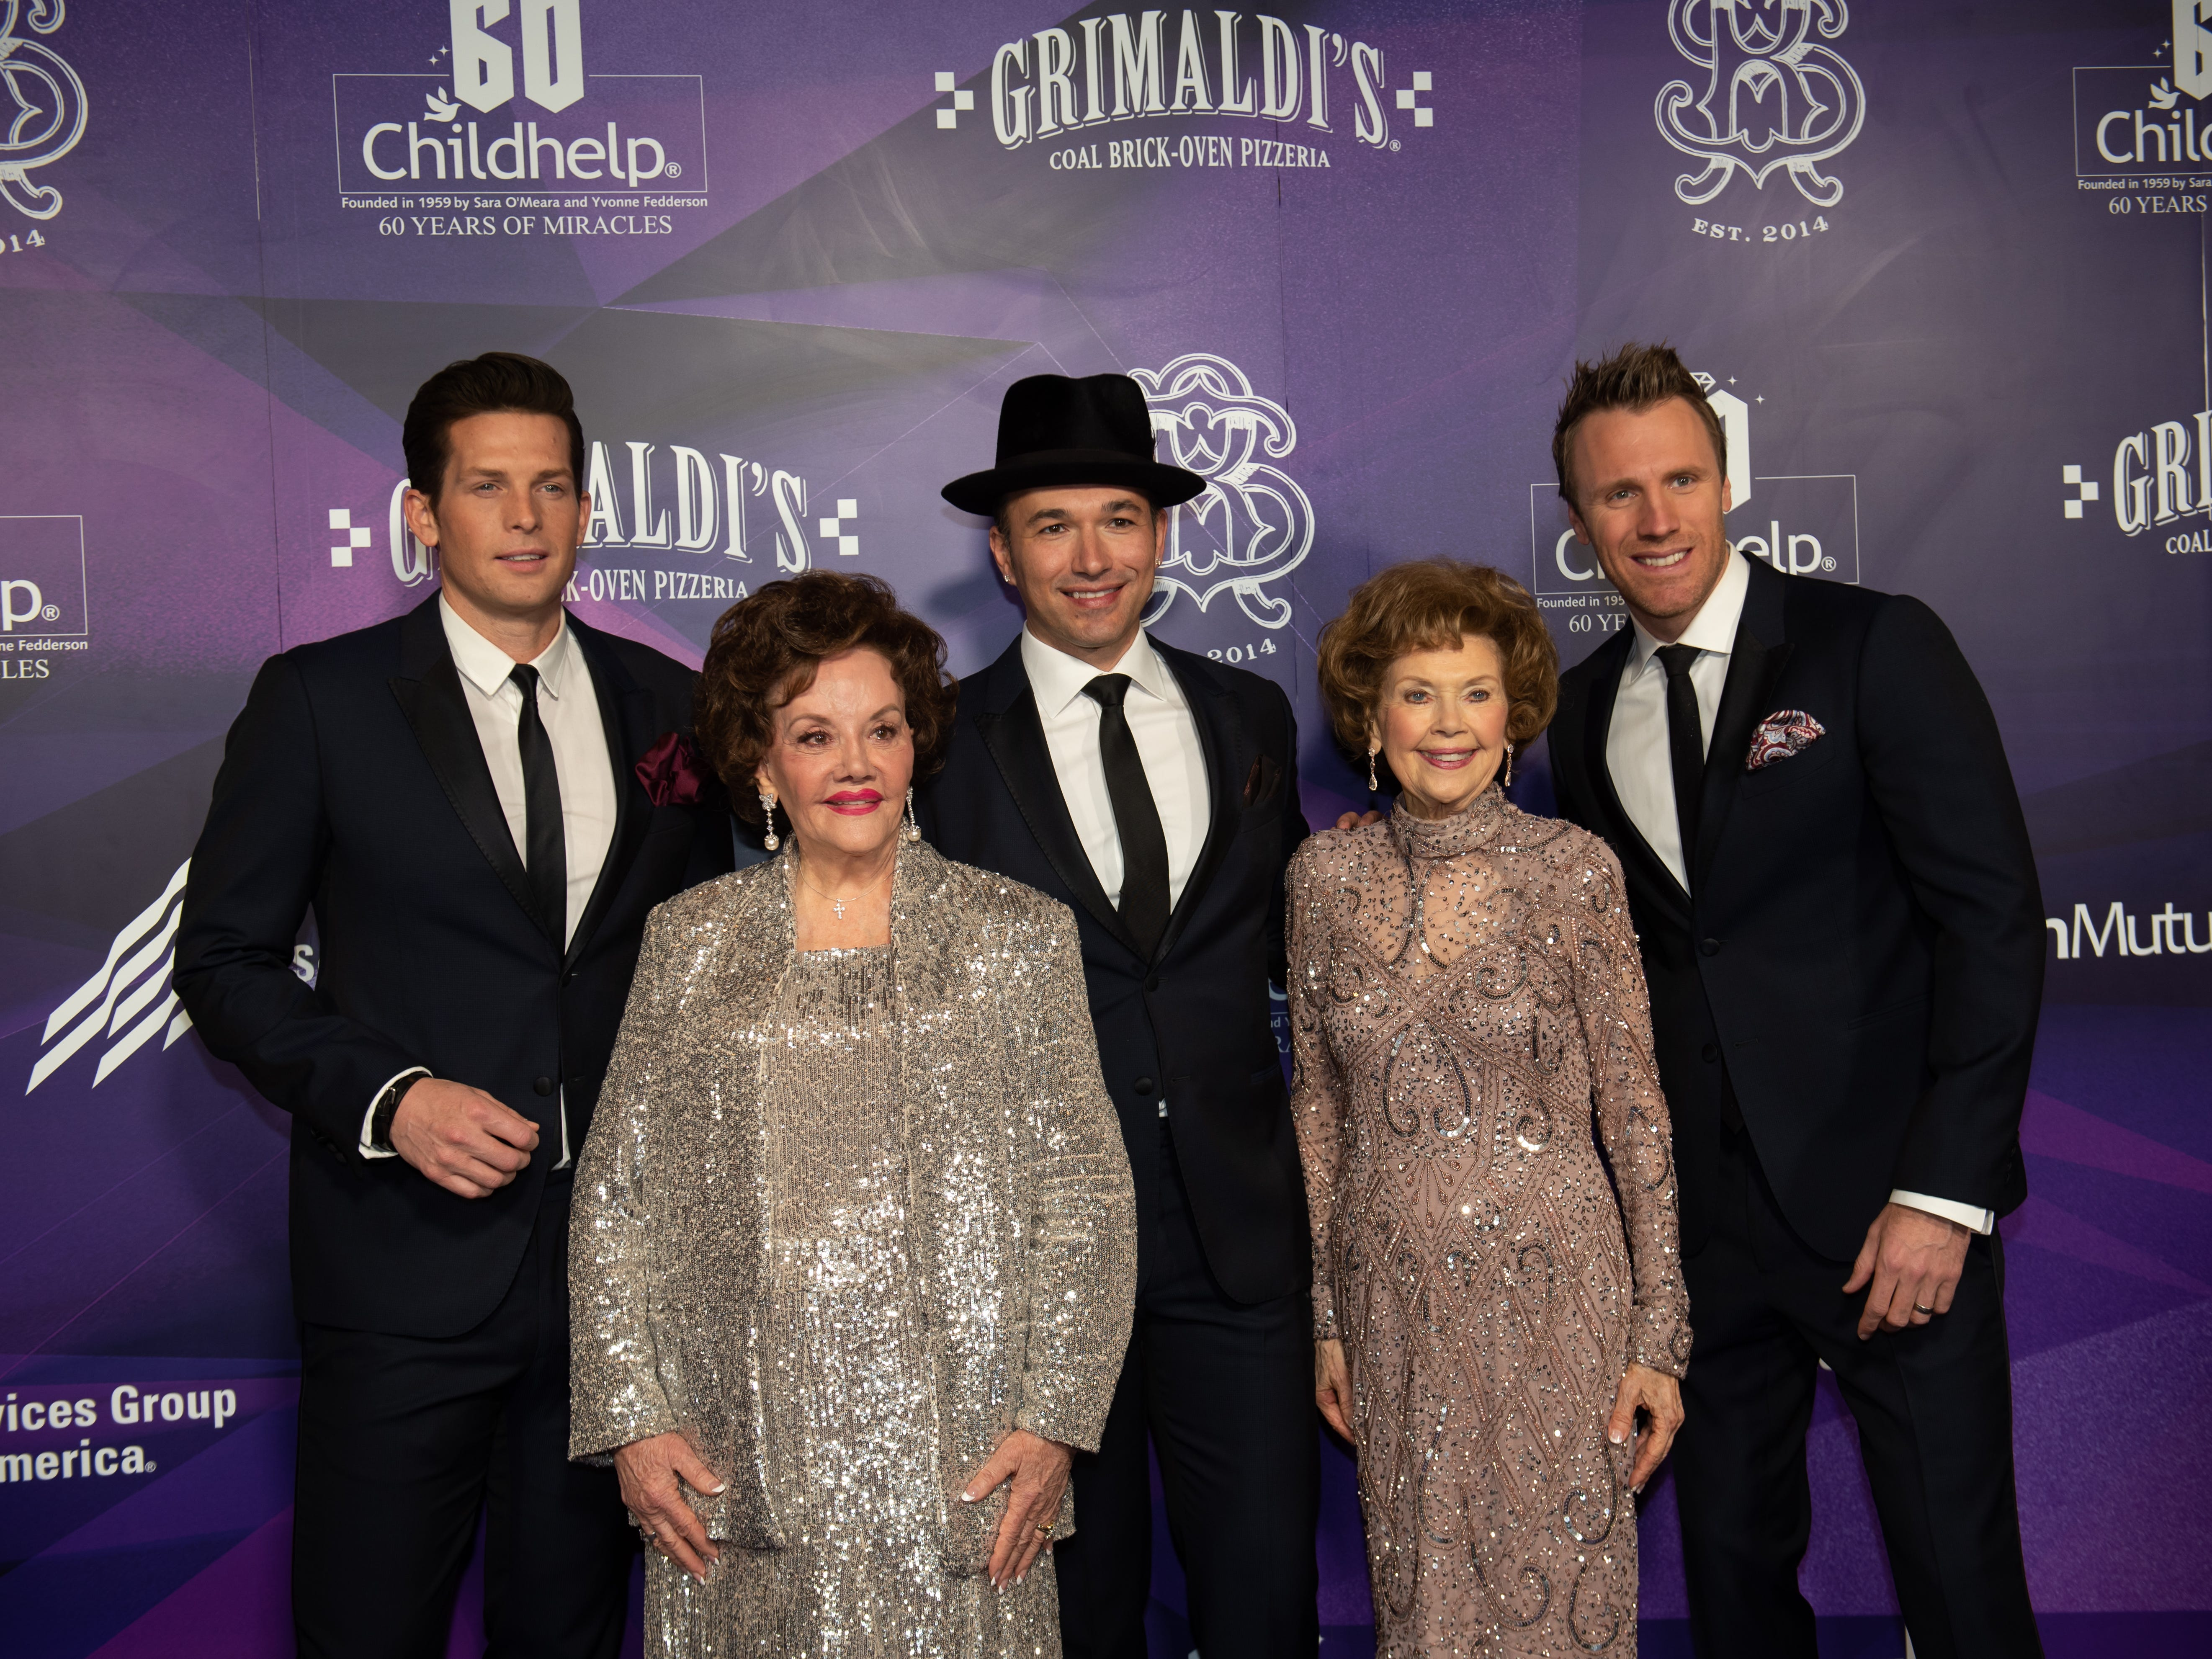 The Tenors accompanied by Childhelp Co-Founders Sara O'Meara (center) and Yvonne Fedderson attended the Childhelp Drive the Dream Gala on February 2, 2019.